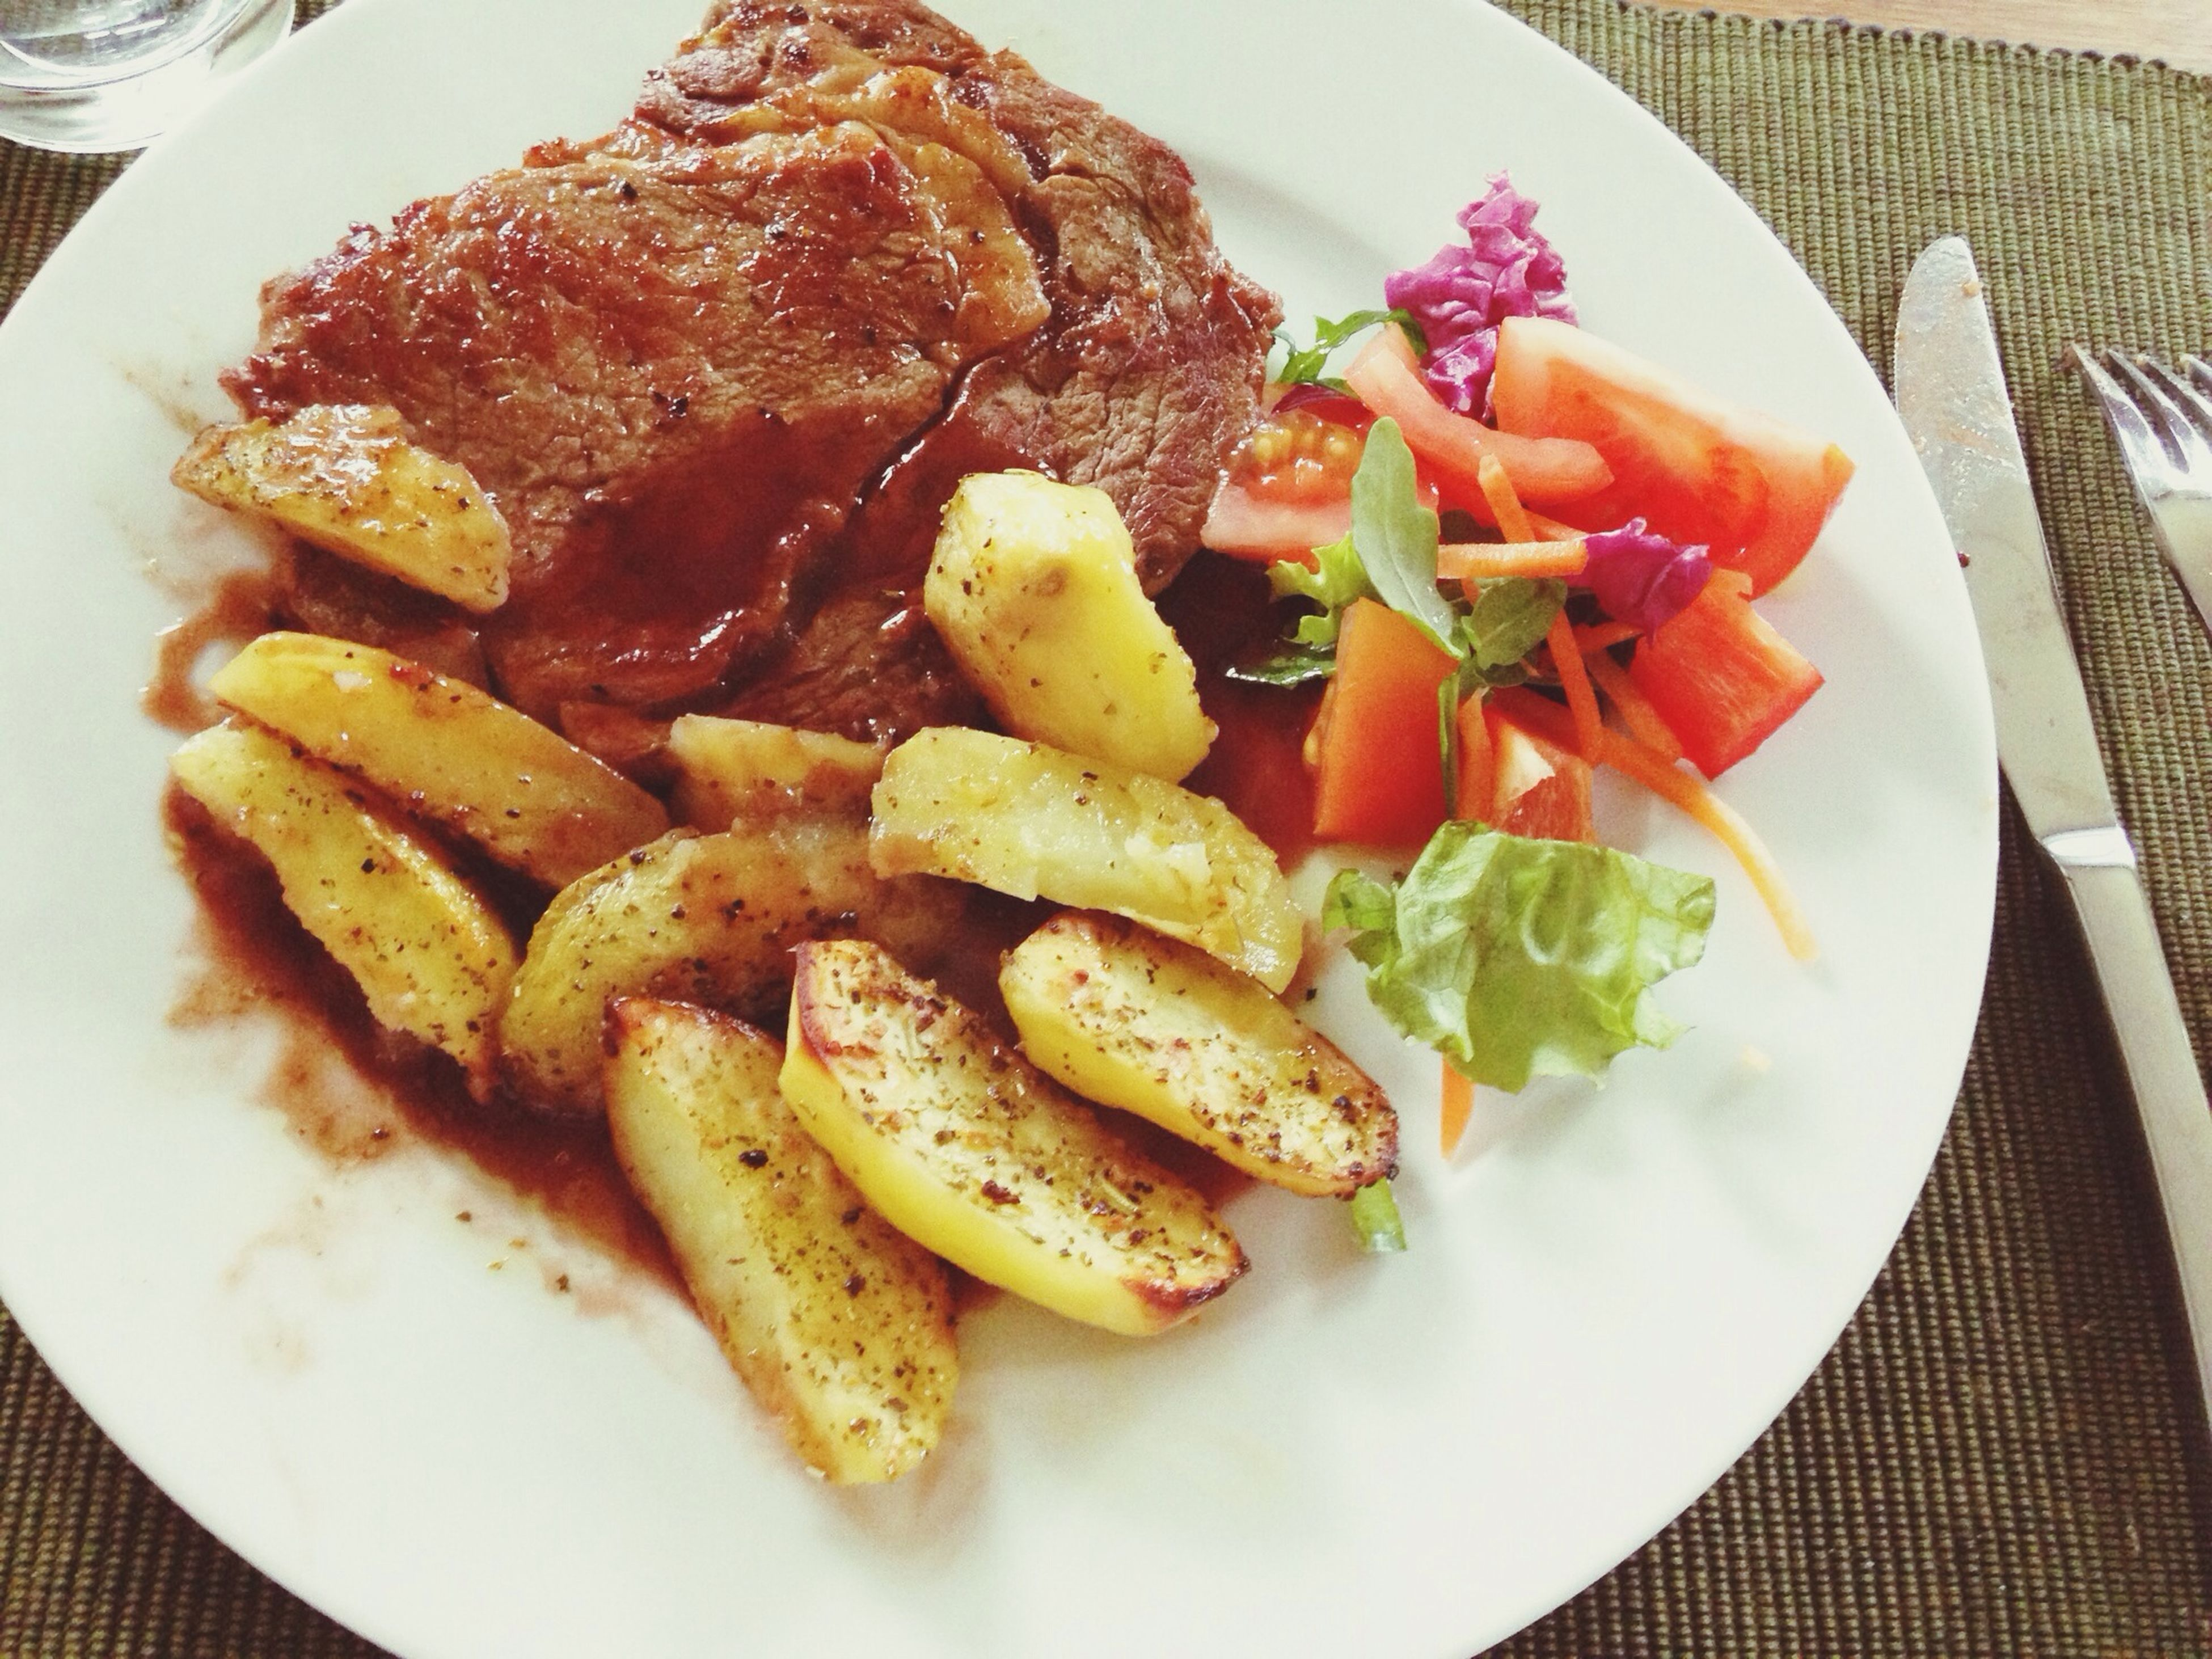 food, food and drink, freshness, indoors, ready-to-eat, plate, still life, table, close-up, serving size, meat, meal, high angle view, healthy eating, served, indulgence, french fries, prepared potato, no people